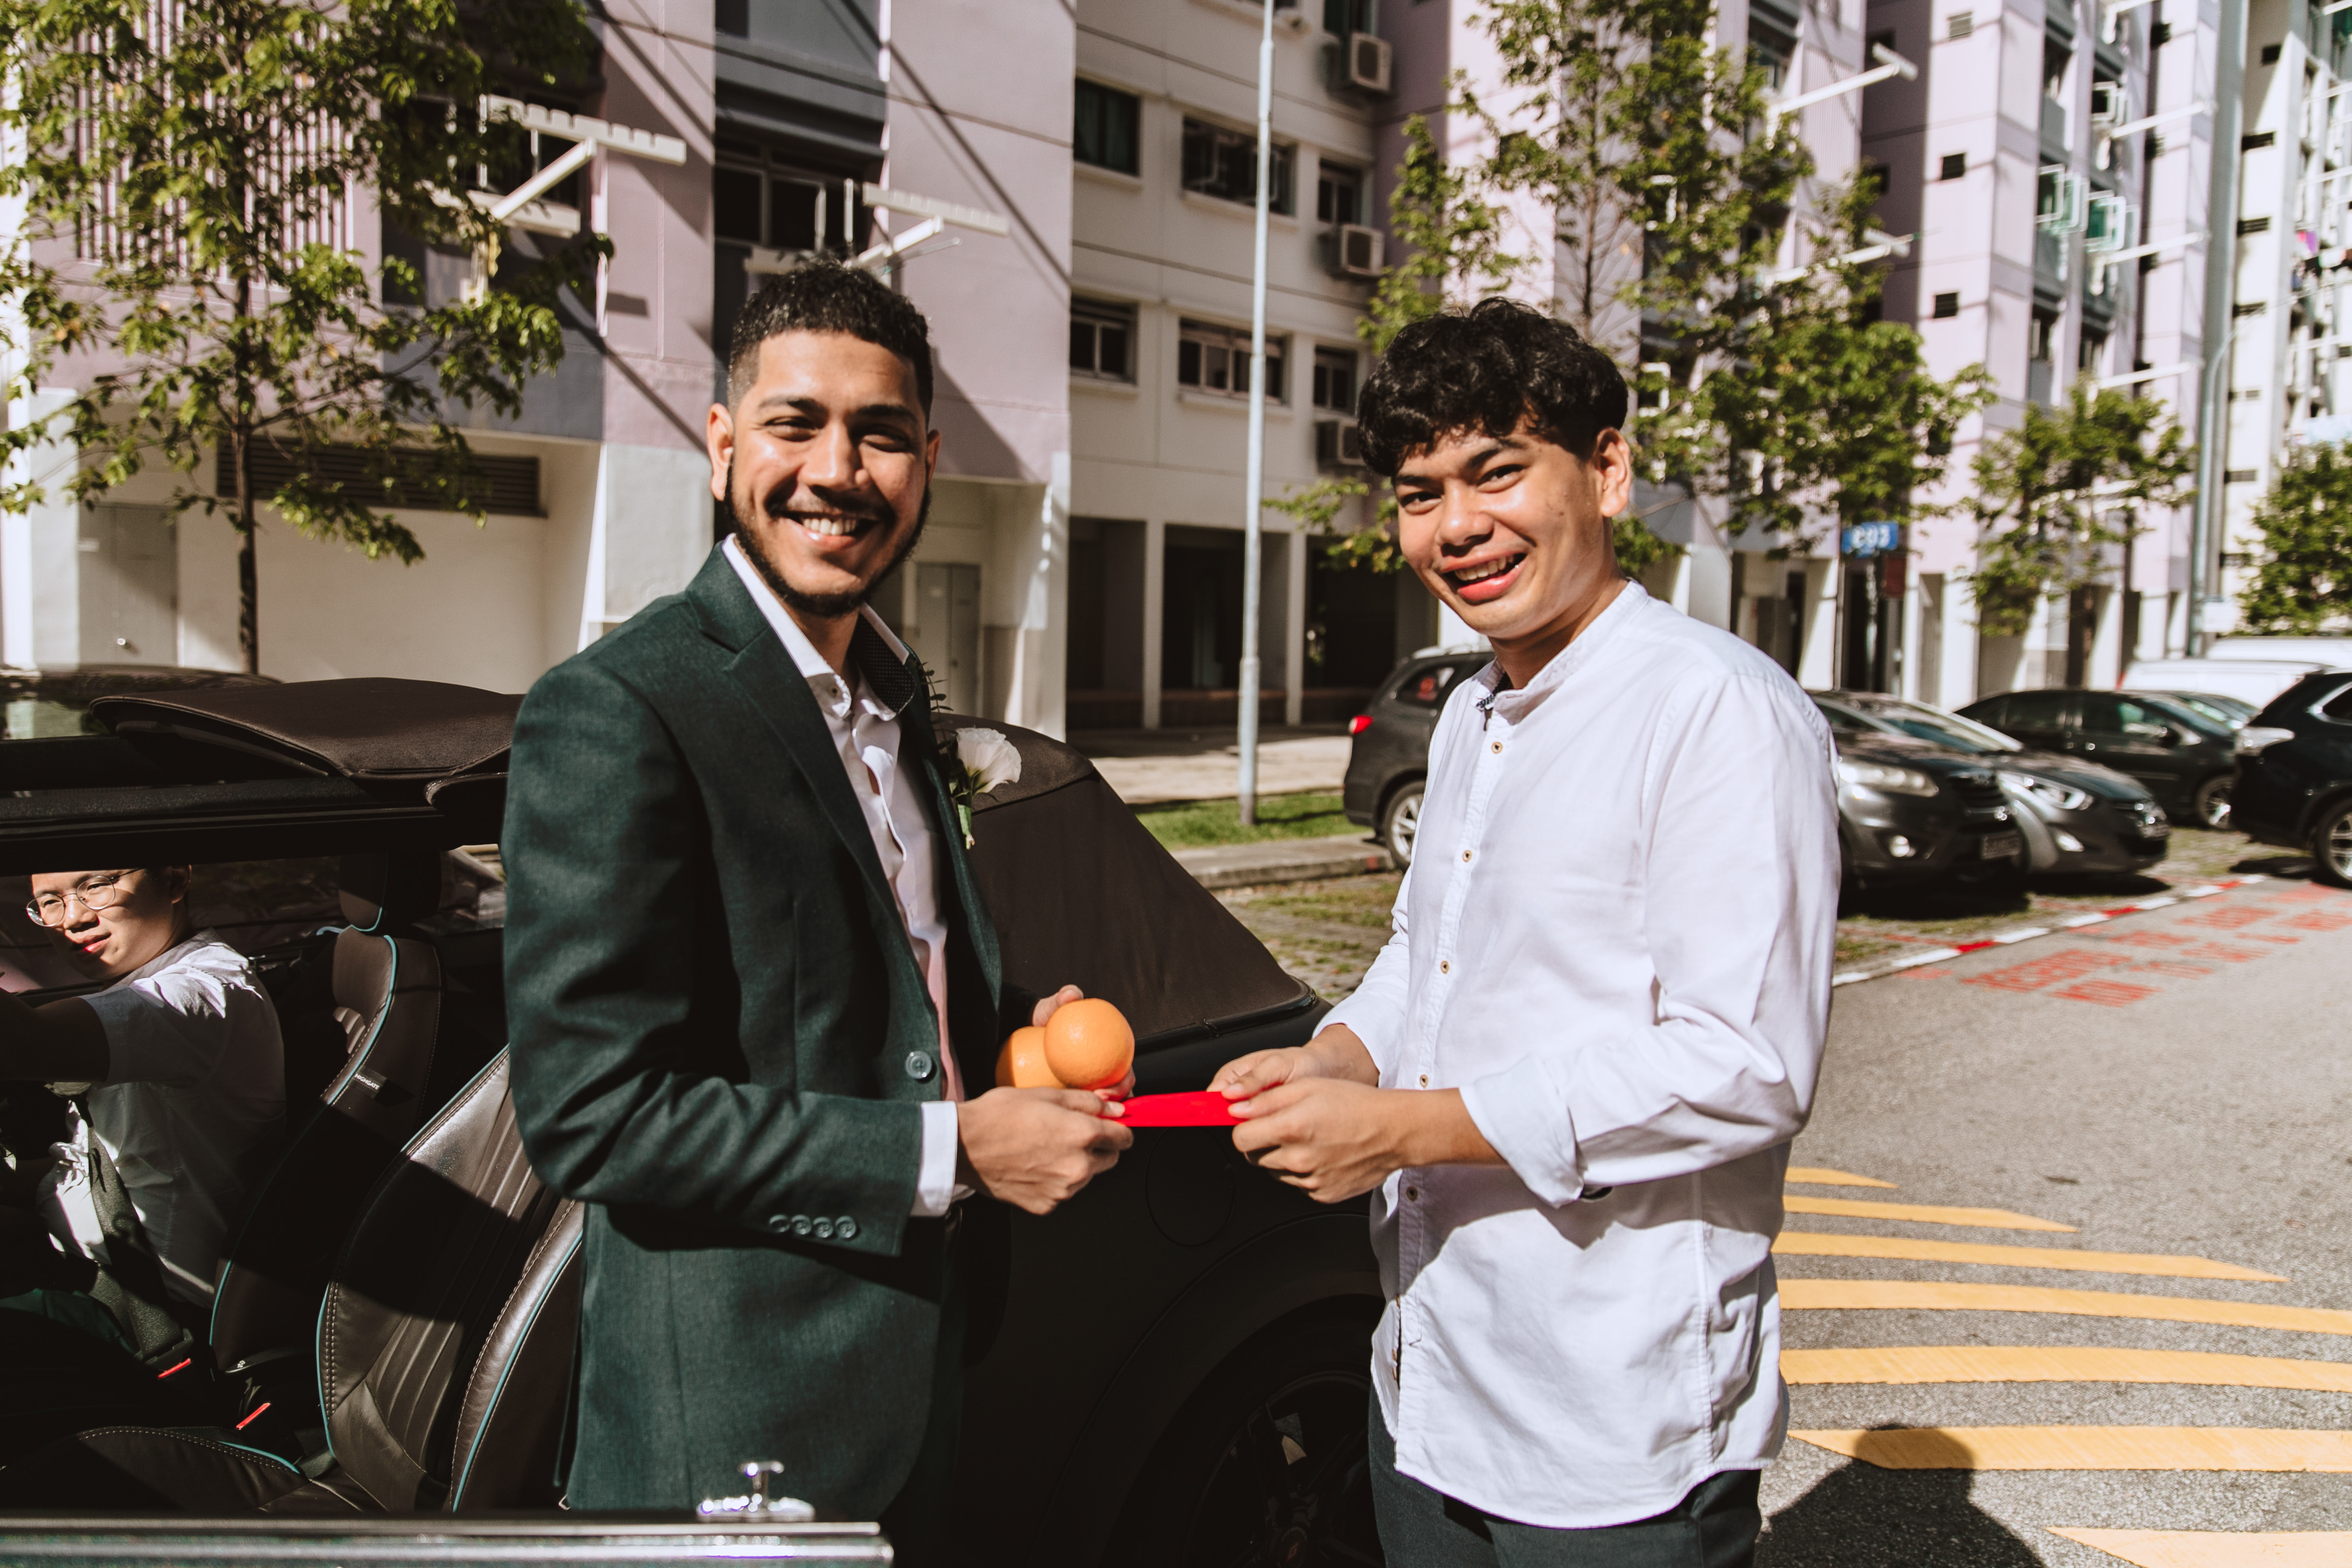 Groom receiving mandarin oranges from bride's younger brother